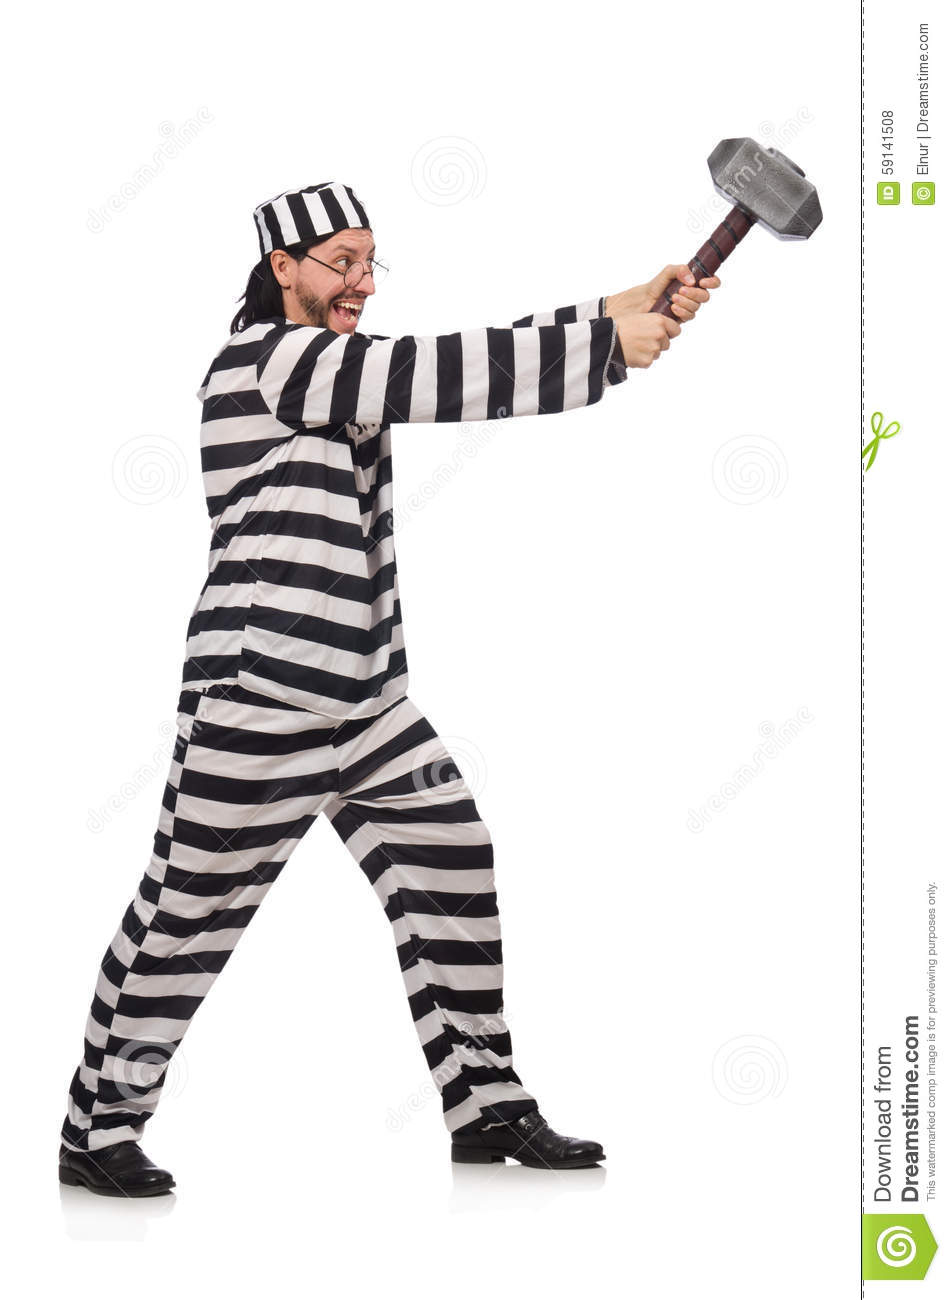 Prison Inmate Isolated Royalty-Free Stock Image